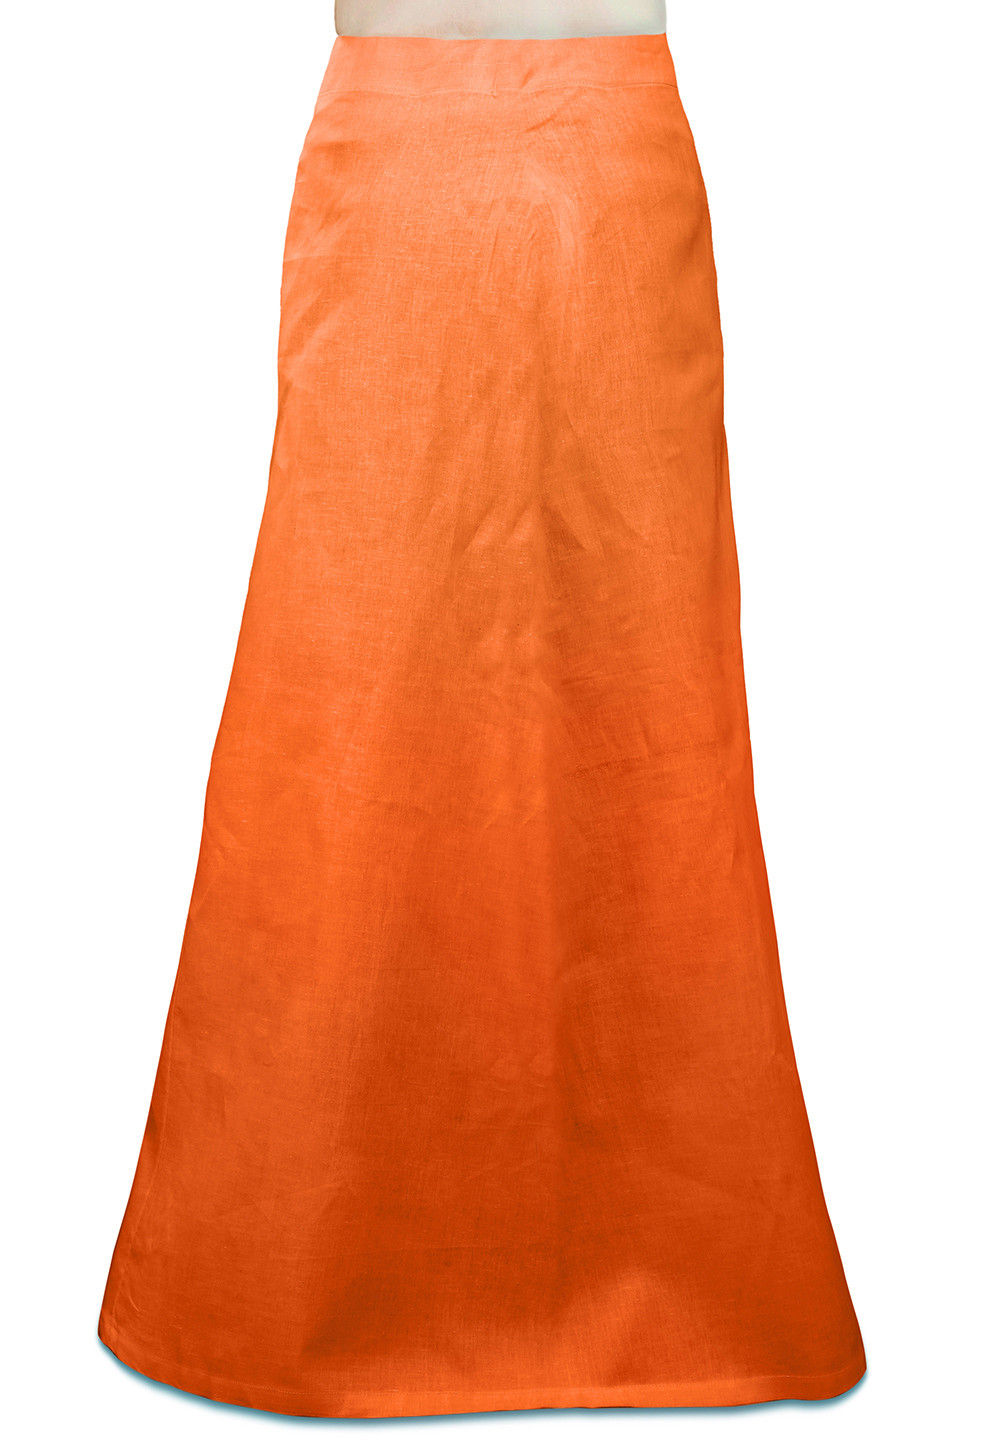 Cotton Petticoat in Orange